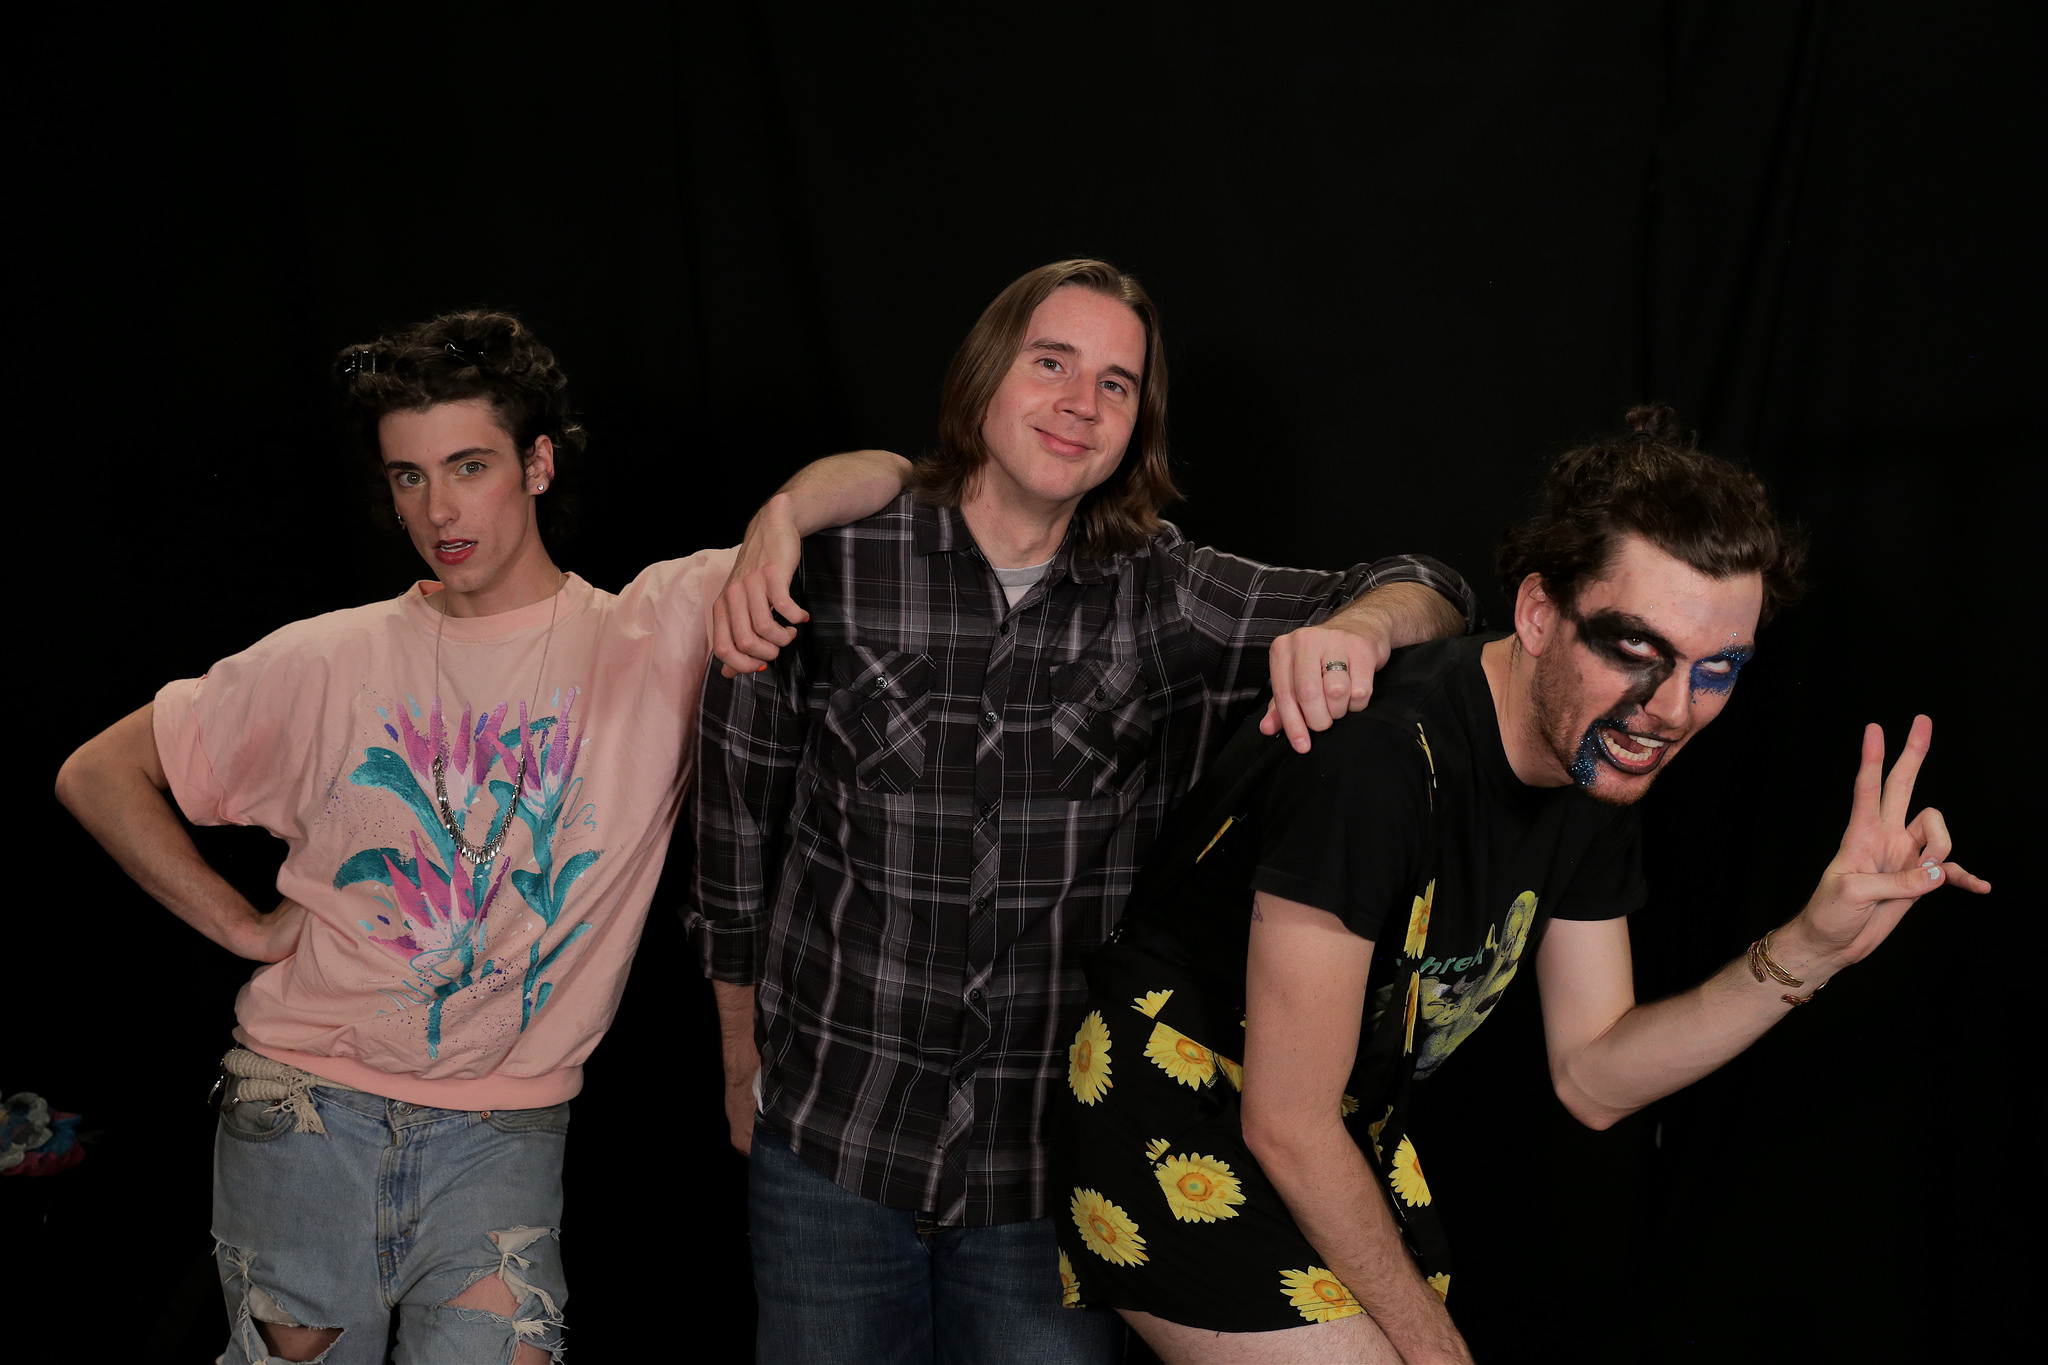 PWR BTTM with Russ Borris at WFUV